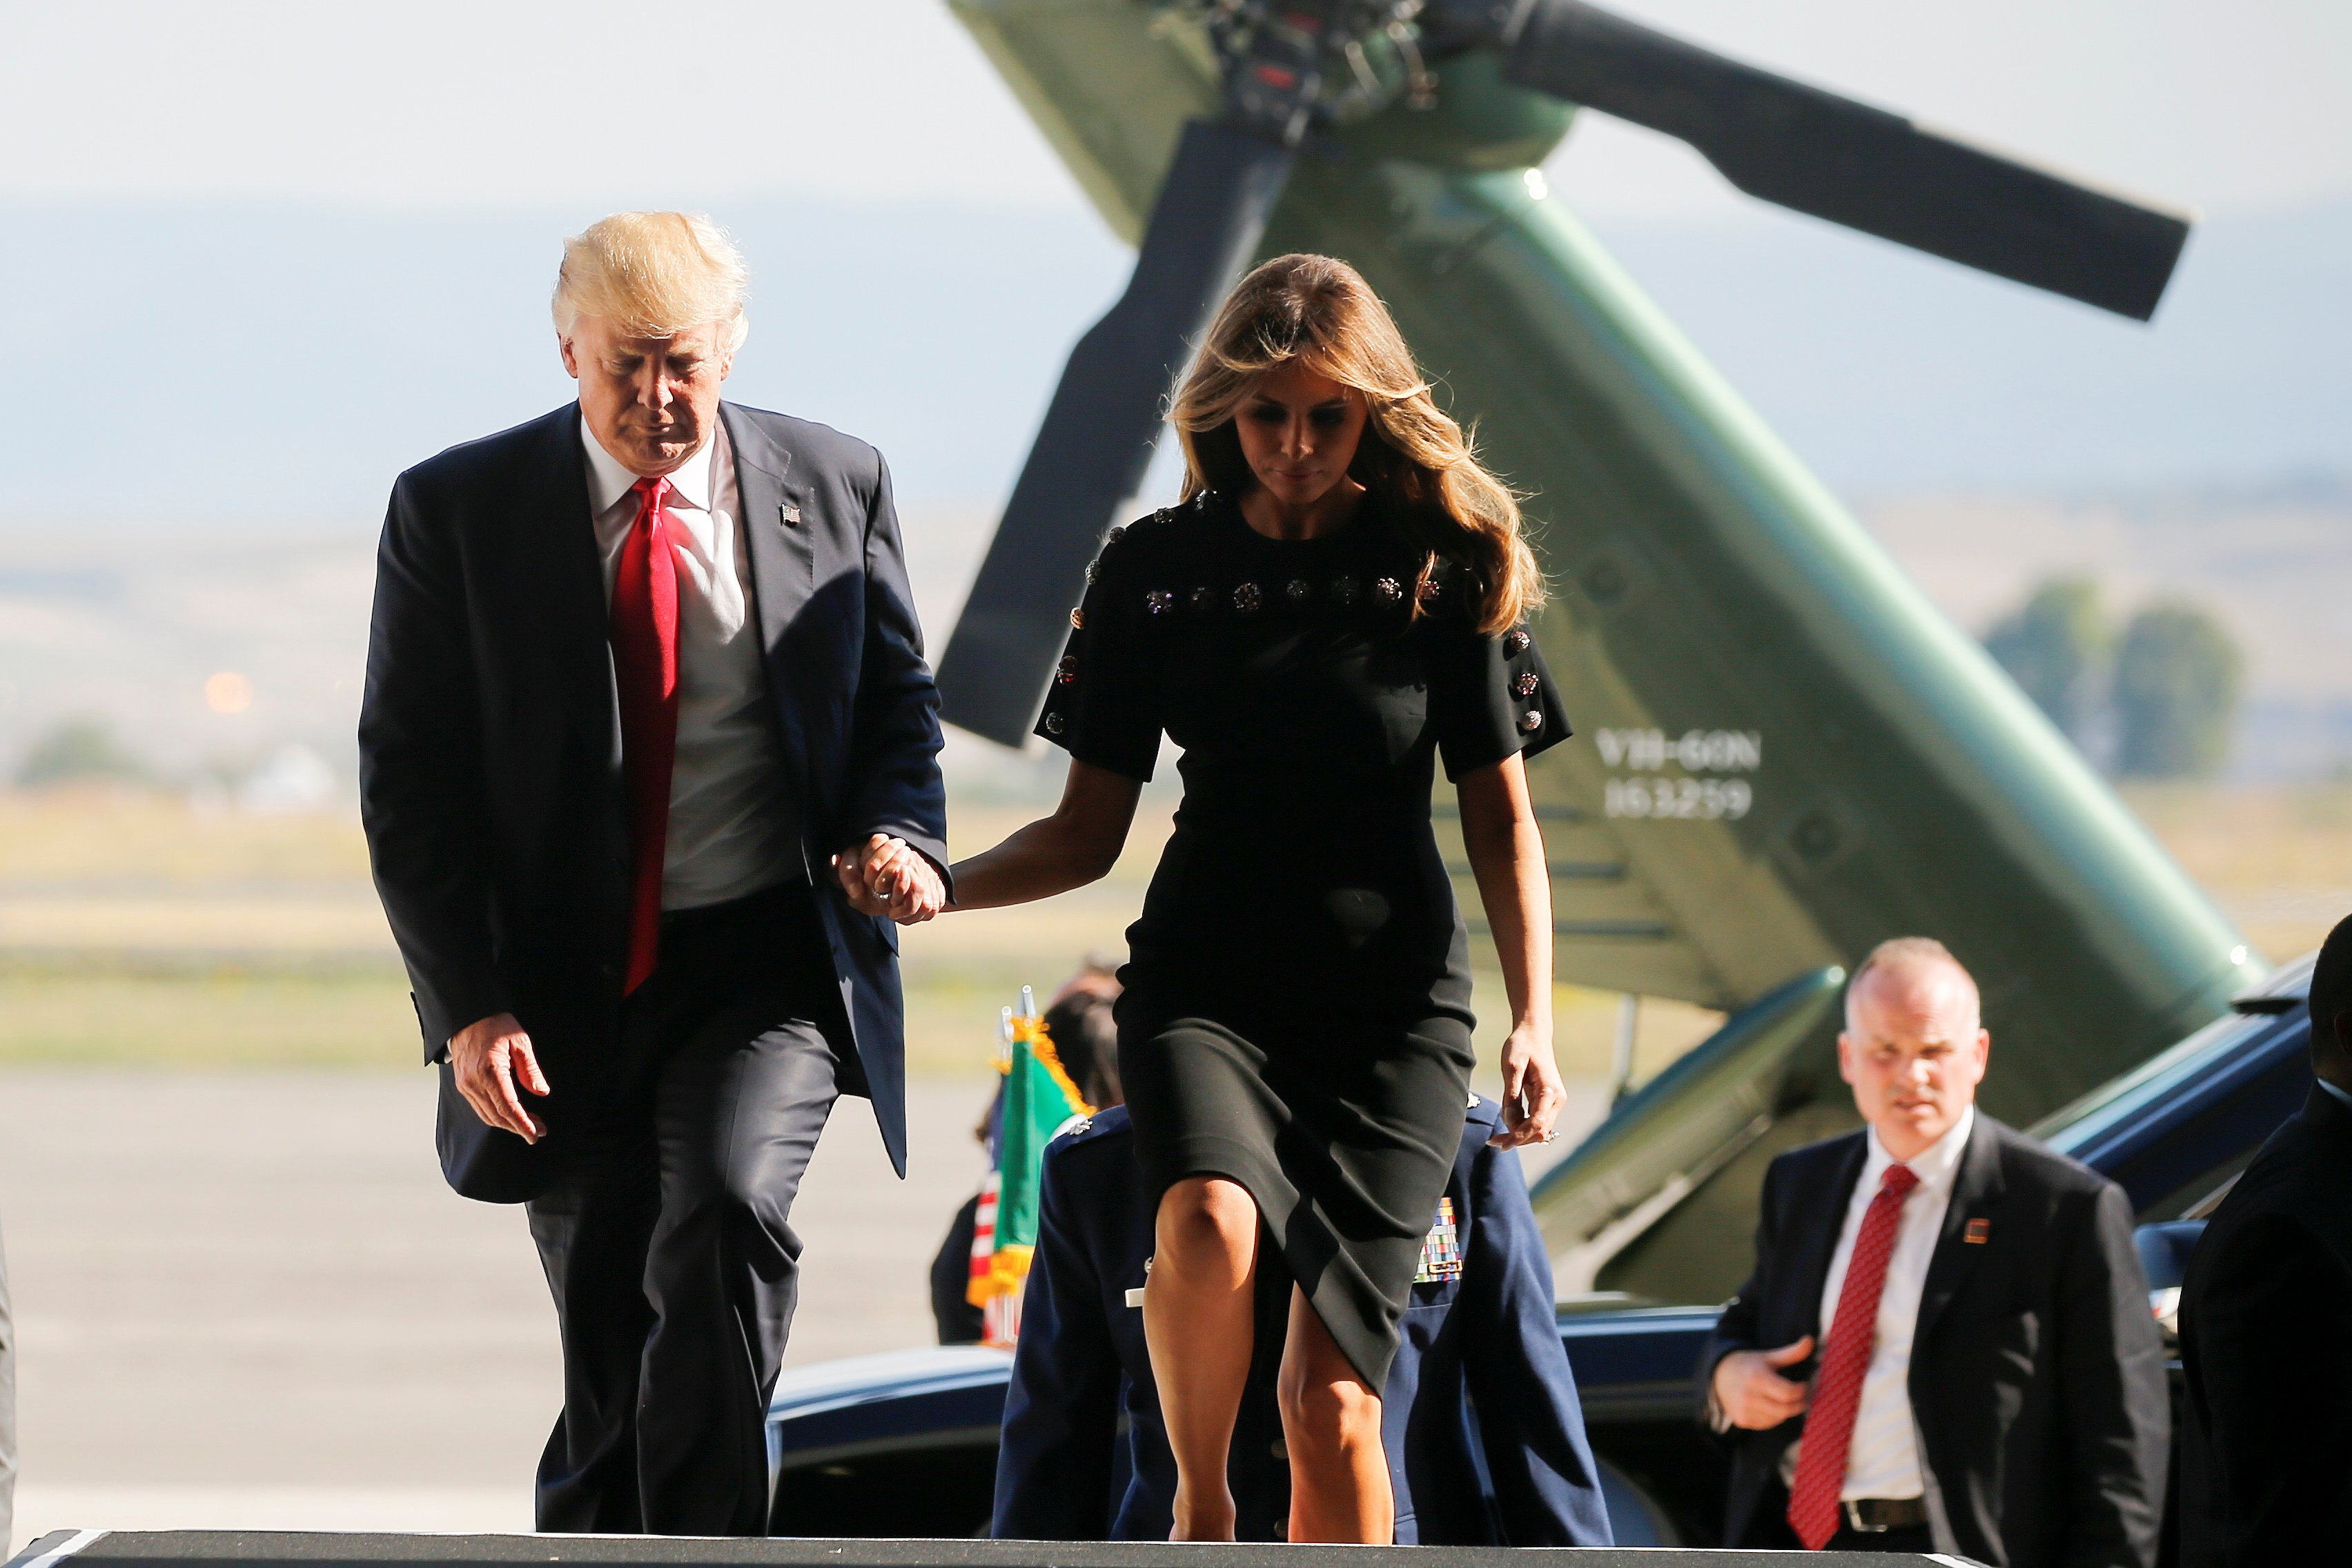 President Trump and first lady Melania Trump hold hands as they arrive at the Naval Air Station Sigonella to visit U.S. troops before returning to Washington D.C. at Sigonella Air Force Base in Sicily, Italy, May 27, 2017.